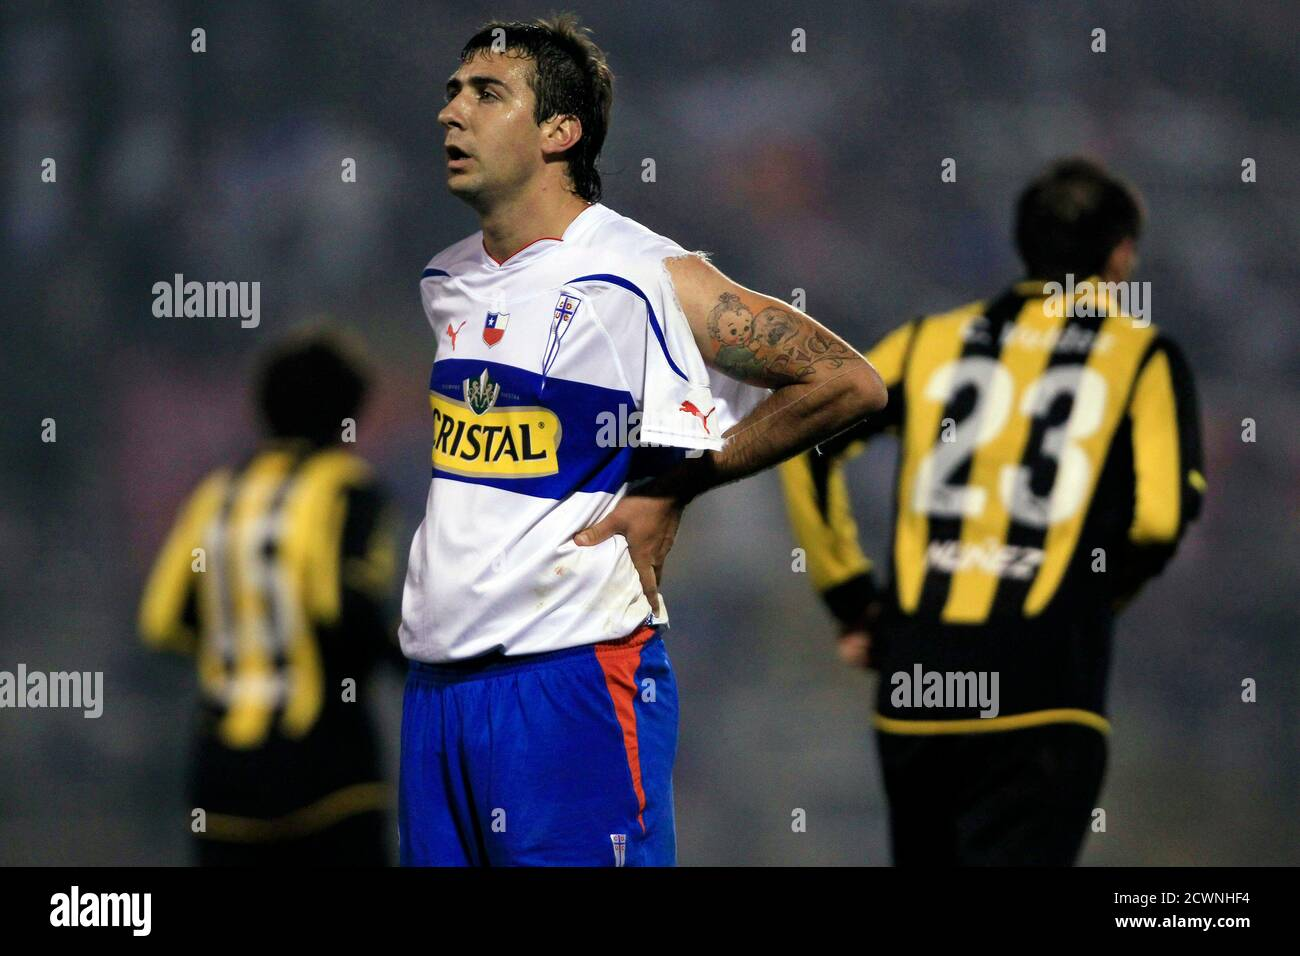 Lucas Pratto High Resolution Stock Photography And Images Alamy